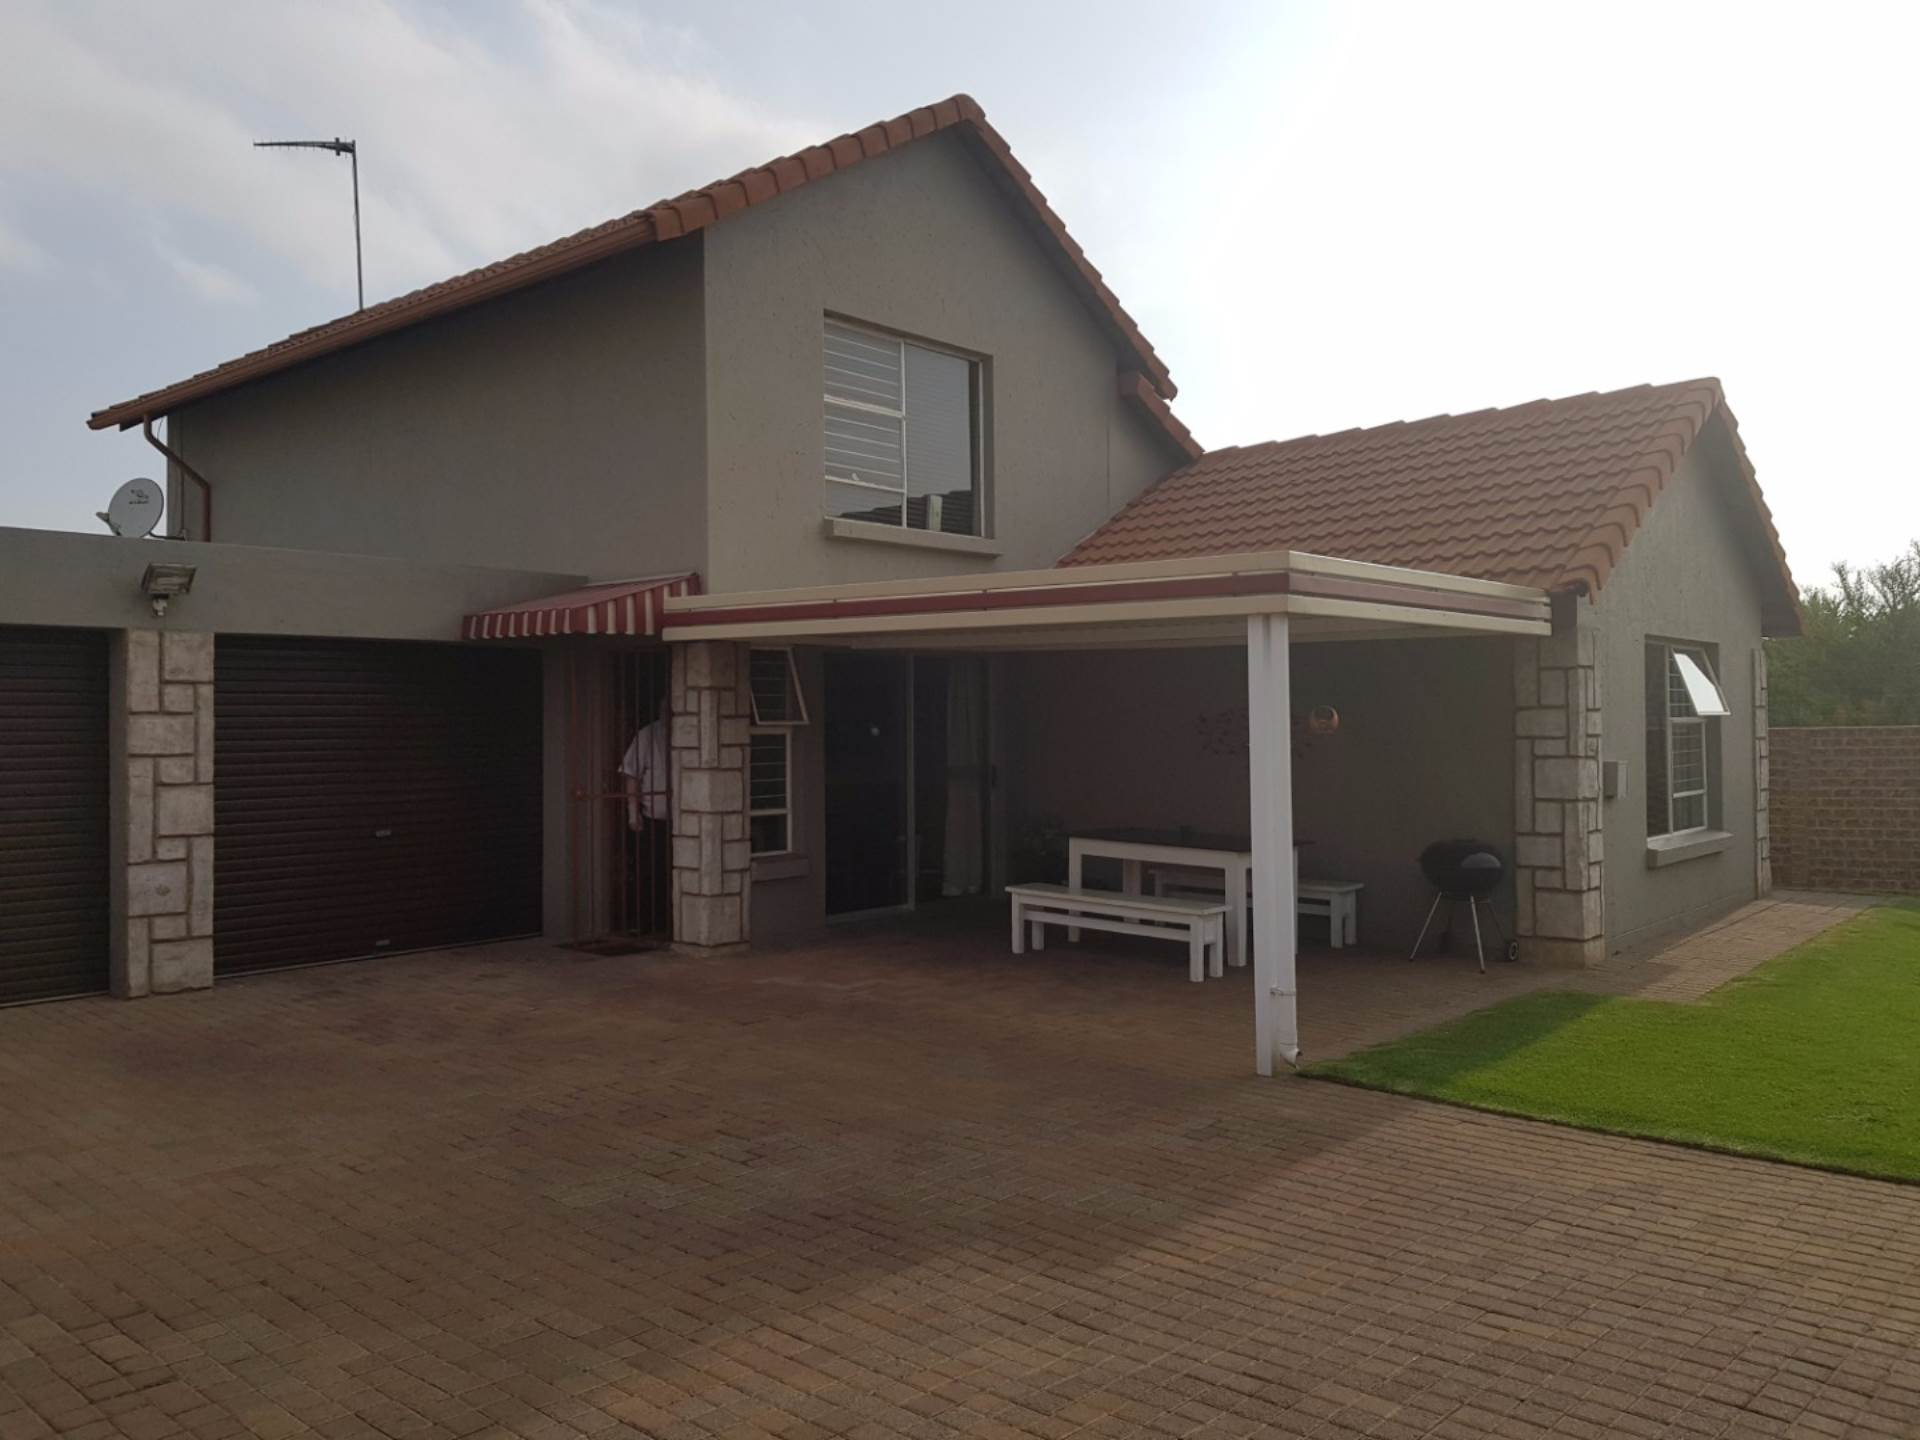 3 BedroomCluster For Sale In Ravenswood